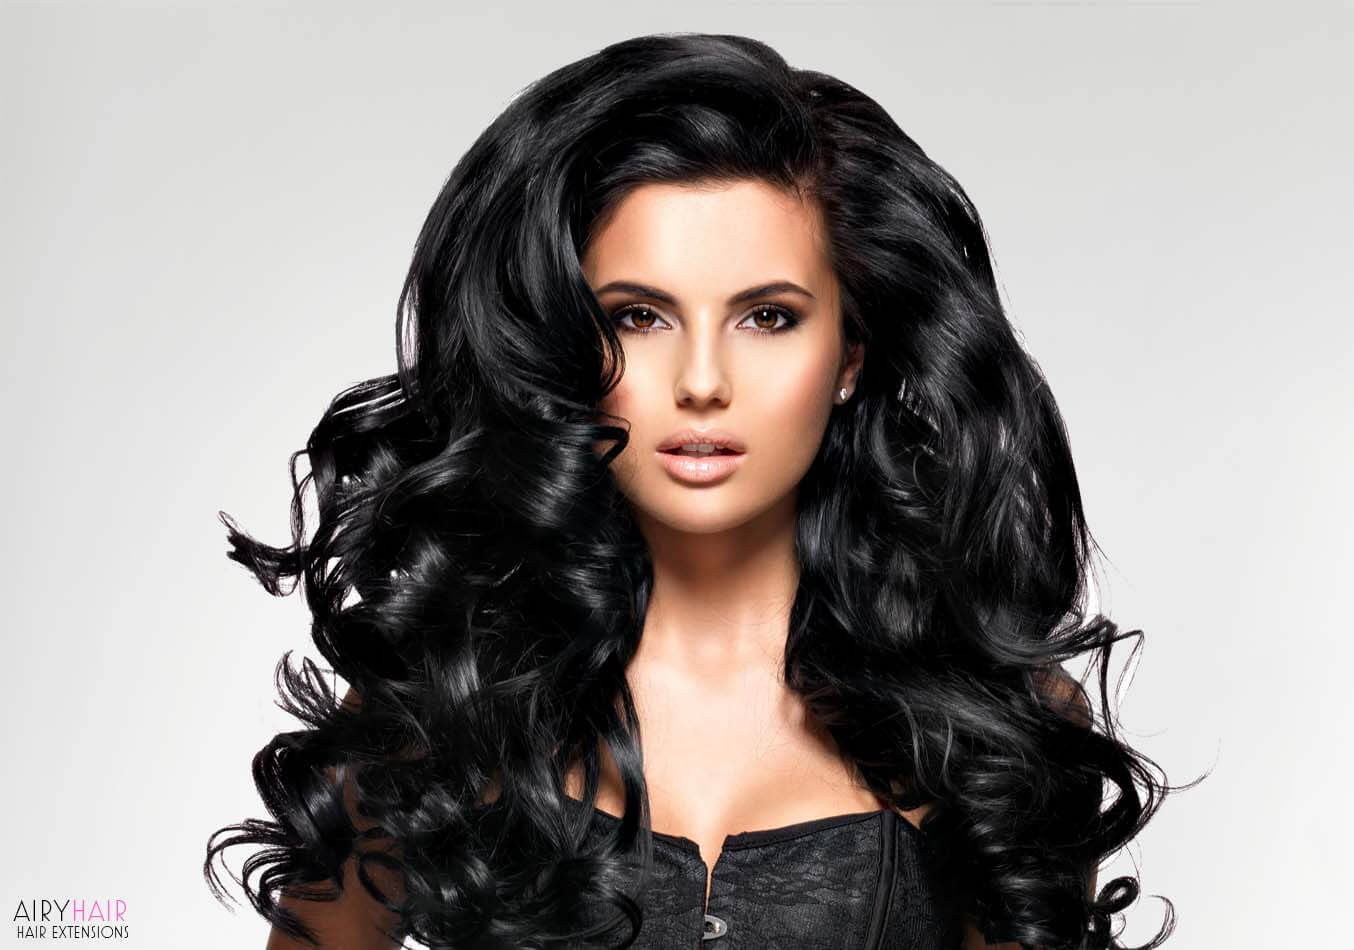 How To Save Money When Buying Hair Extensions